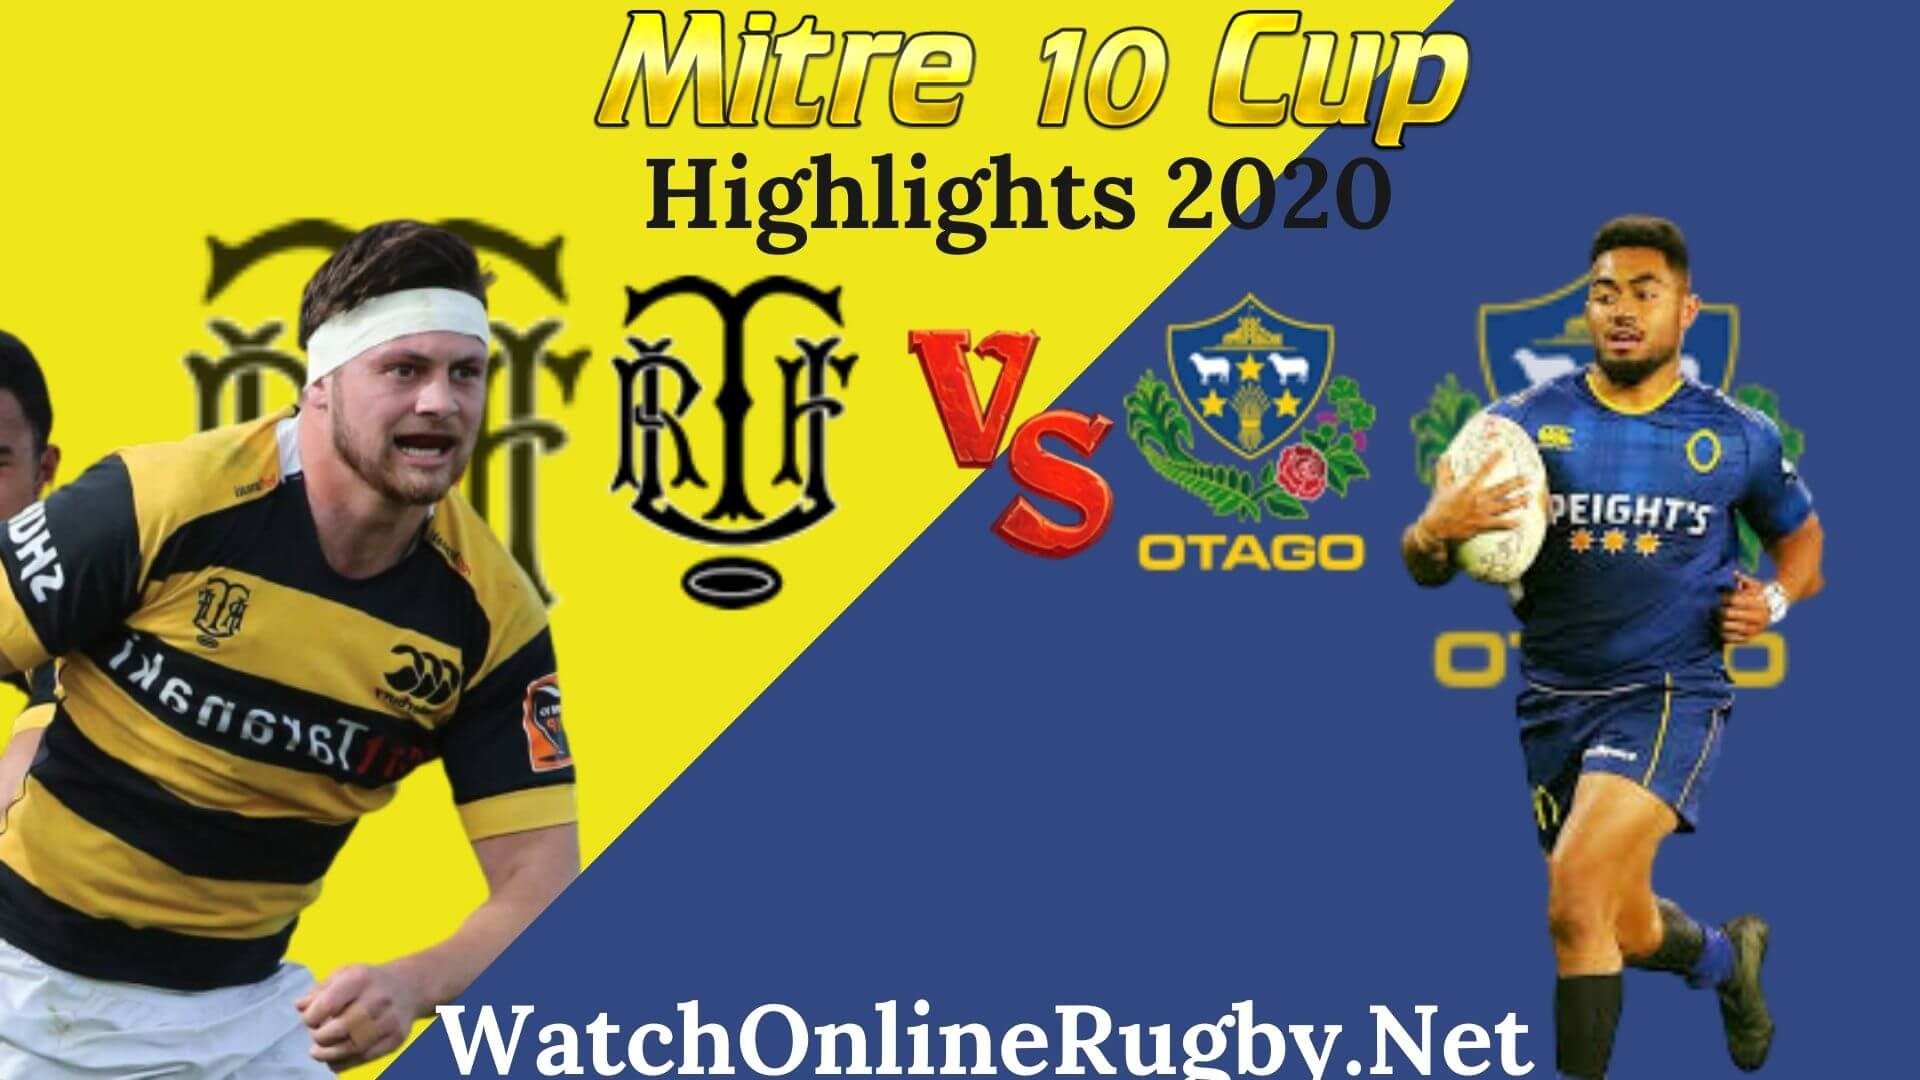 Taranaki vs Otago RD 3 Highlights 2020 M10 Cup